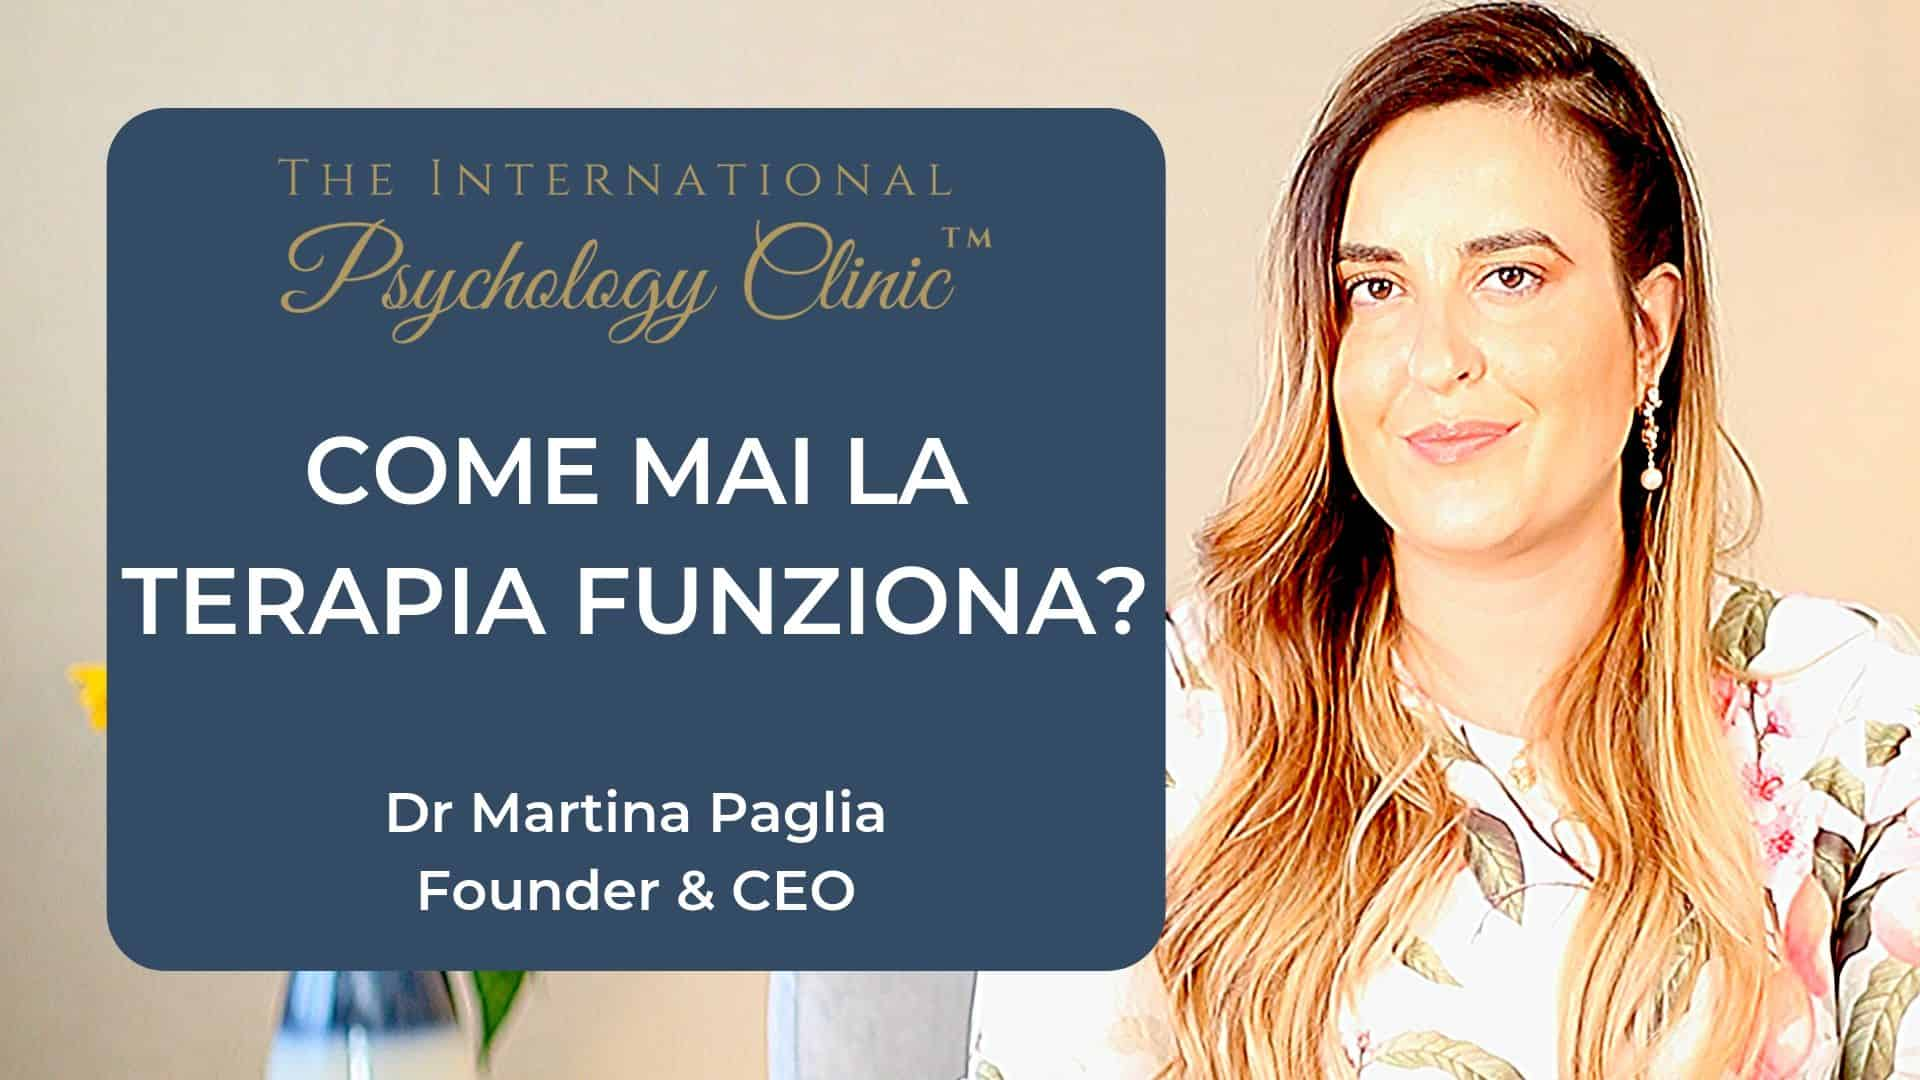 Martina Paglia come mai la terapia funziona the Italian psychology clinic il tuo psicologo italiano a Londra